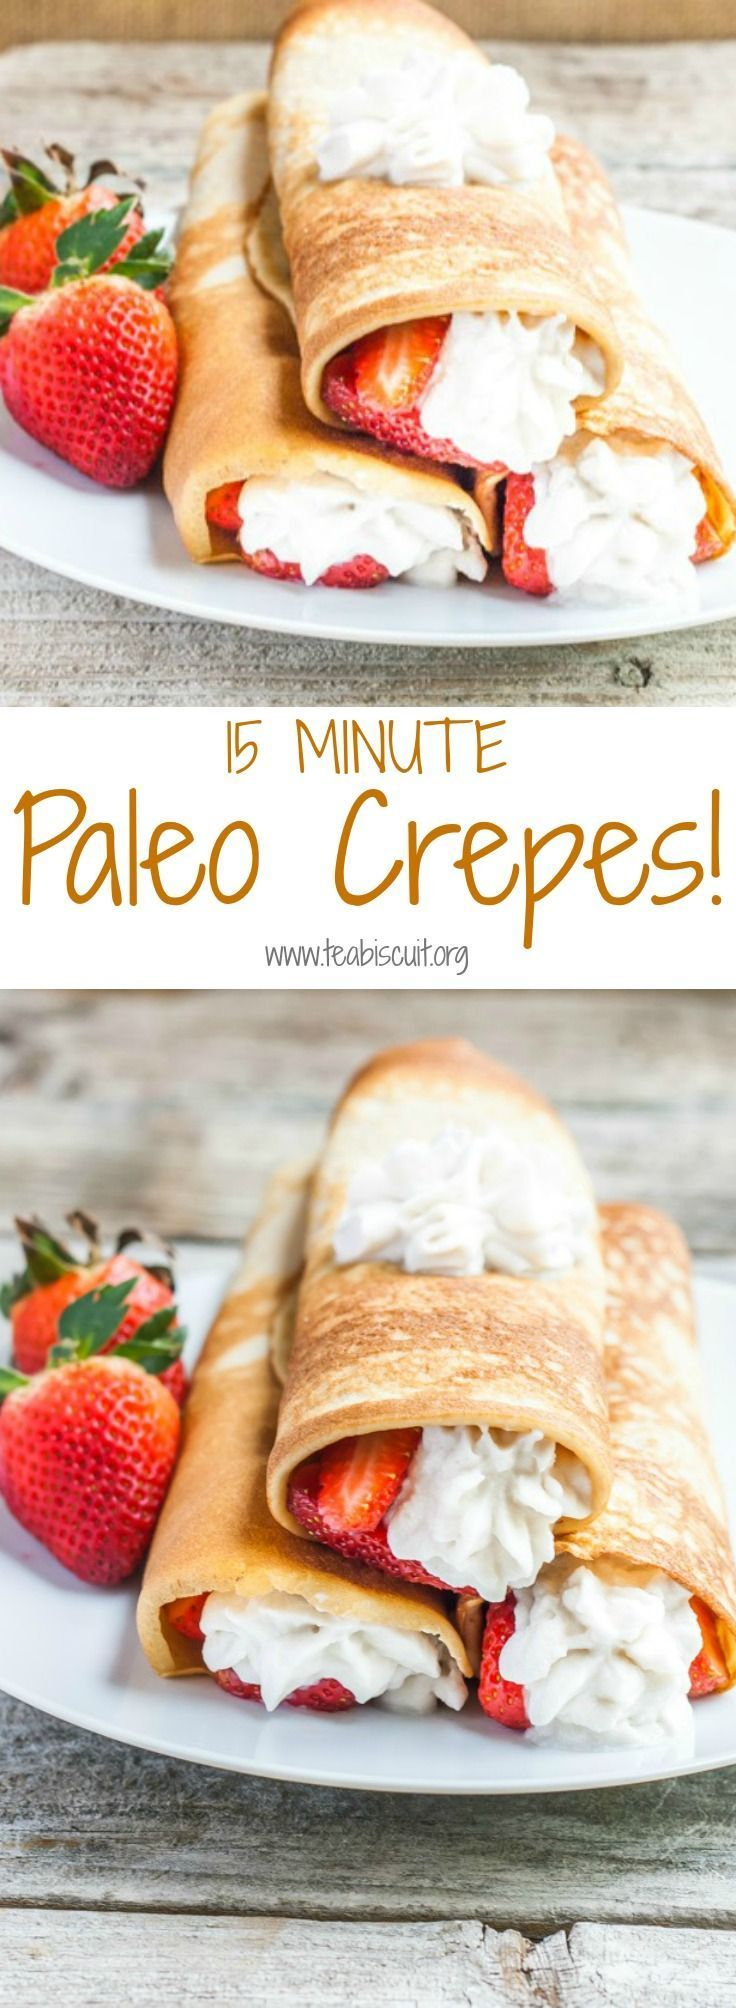 So fast and easy, make Paleo crepes in less than 15 Minutes! A Delicious Paelo Dessert made from scratch. Optional Coconut whipped cream recipe included!| Paleo | Grain Free | Gluten Free | teabiscuit.org